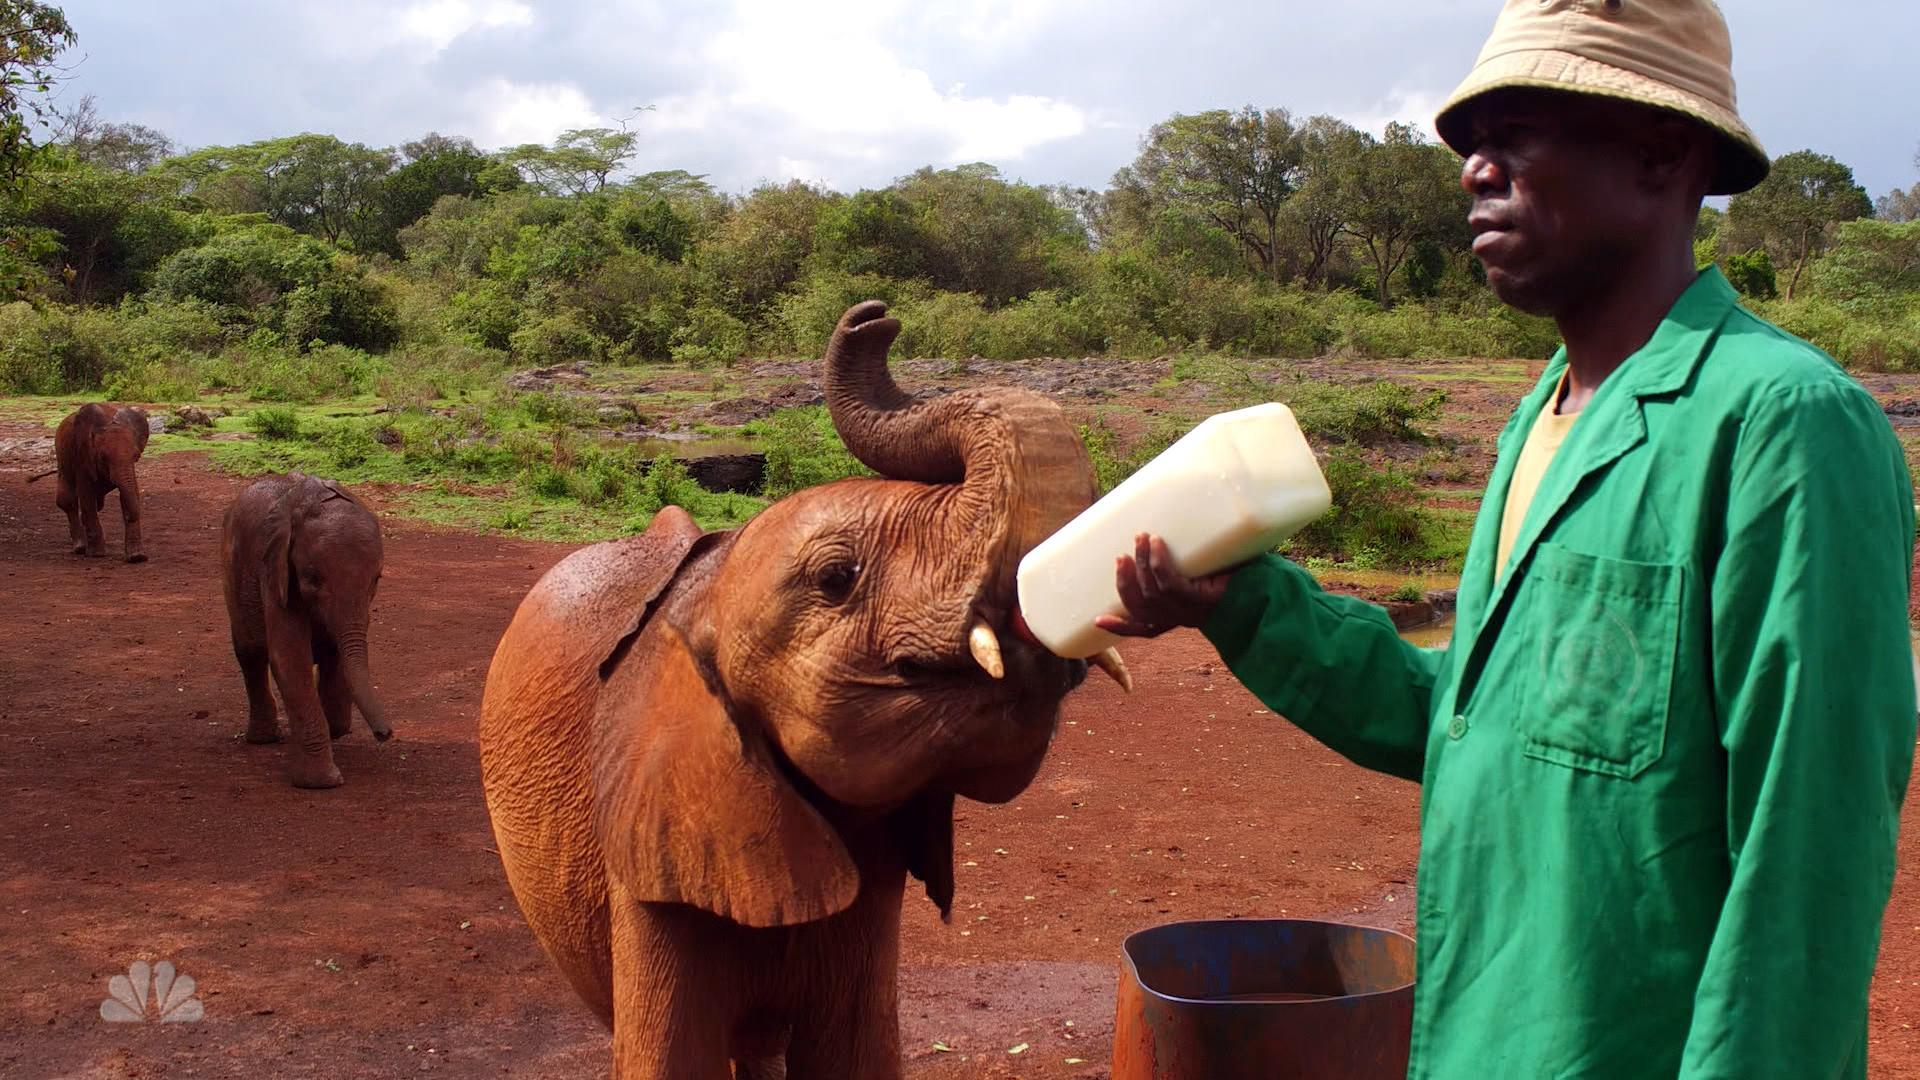 'Sunday Night With Megyn Kelly' Team Travels to Kenya to Report on Efforts to Protect Elephants